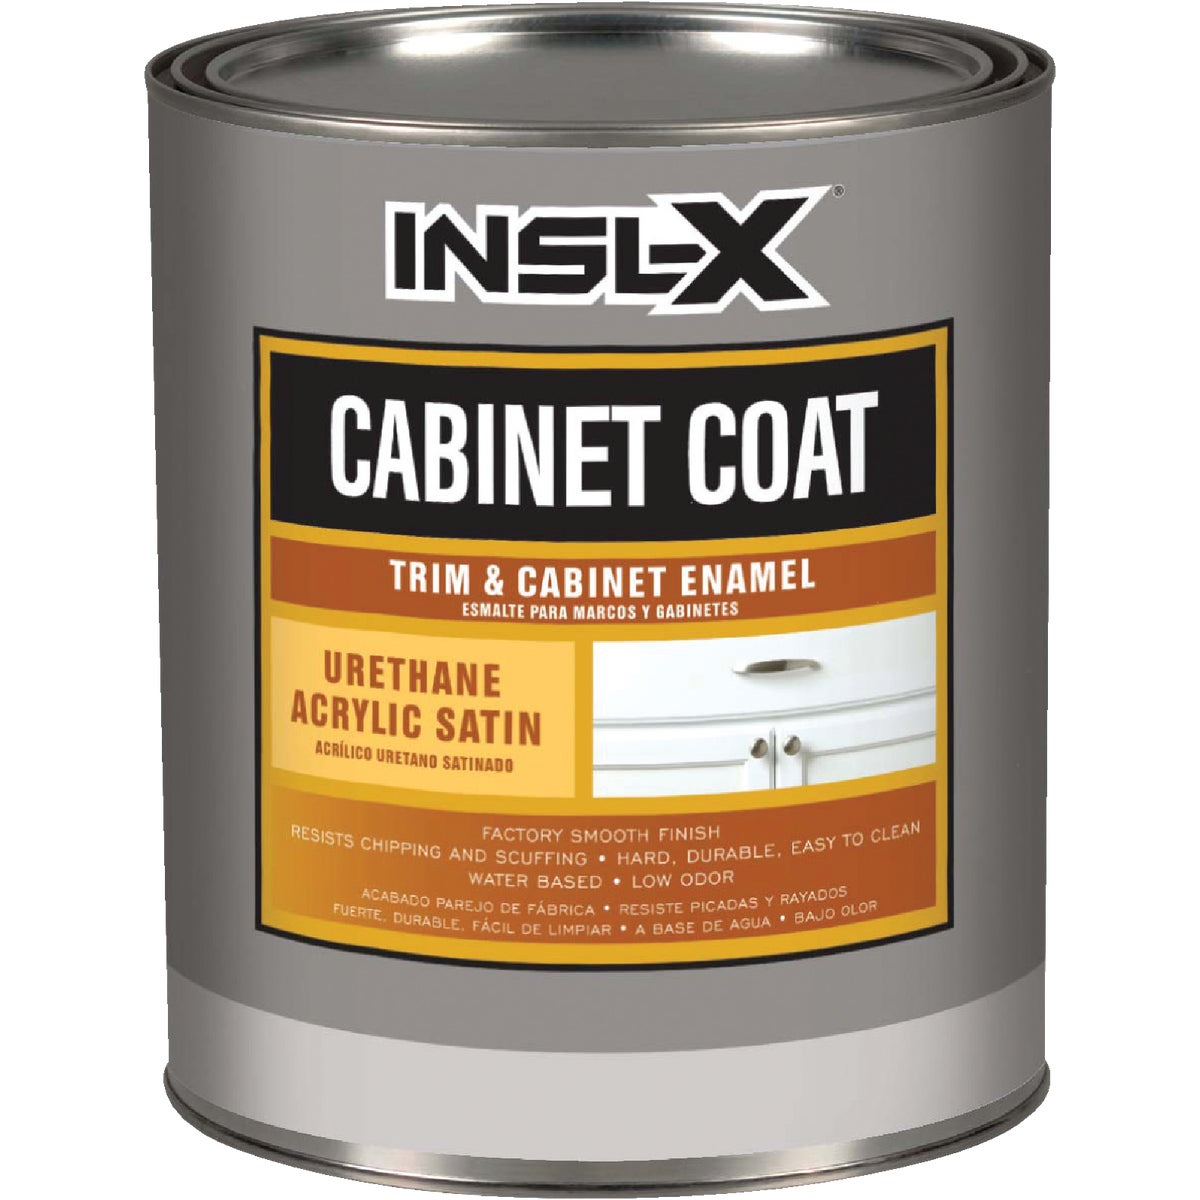 SAT TINT CABINET ENAMEL - CC4560099-44 by Insl X Prod Corp